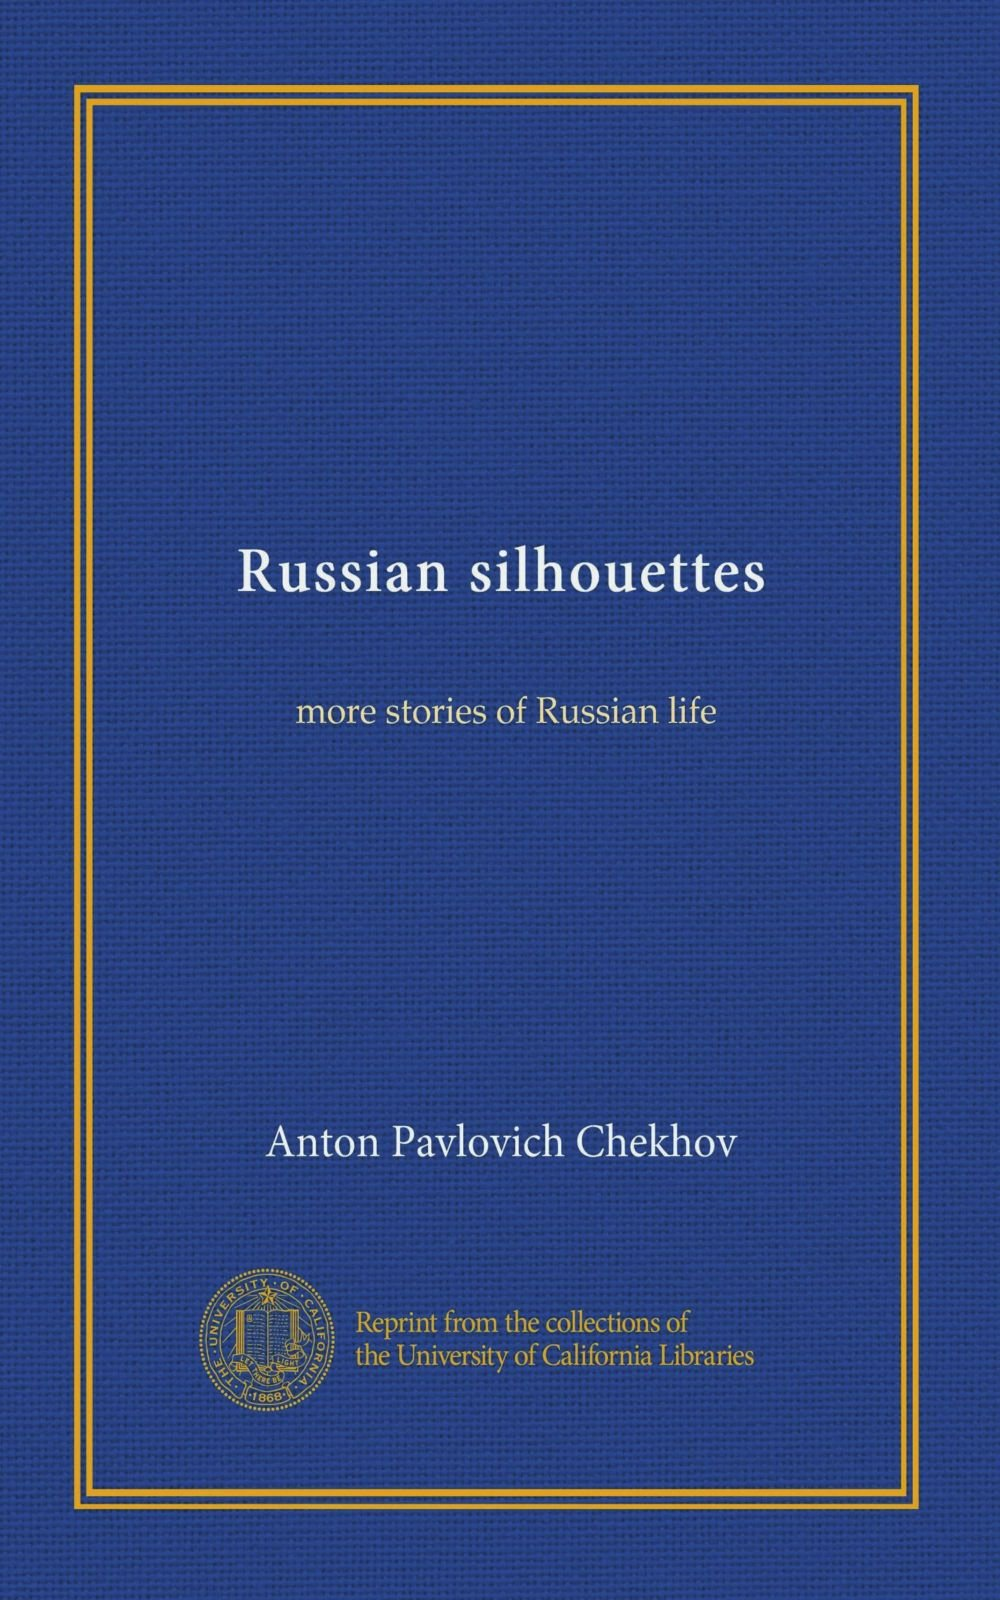 Download Russian silhouettes (Vol-1): more stories of Russian life ebook